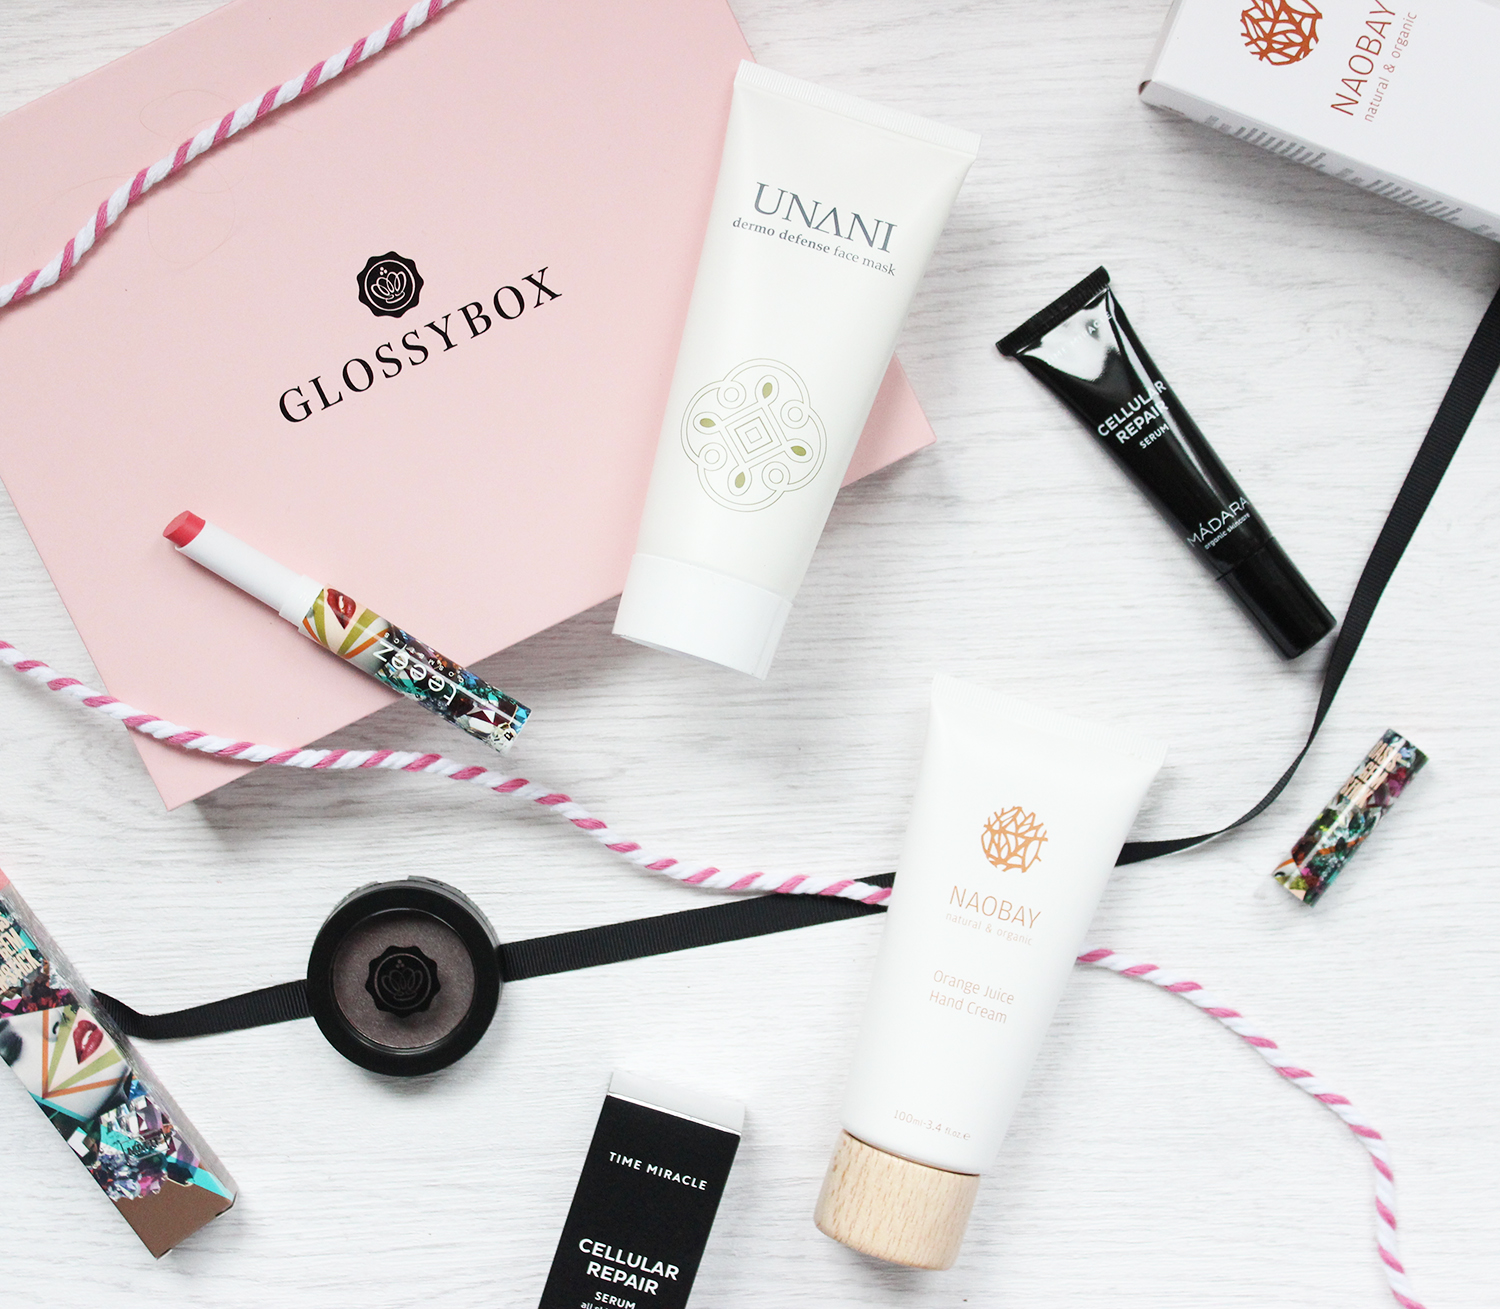 Glossybox January 2016 contents and review